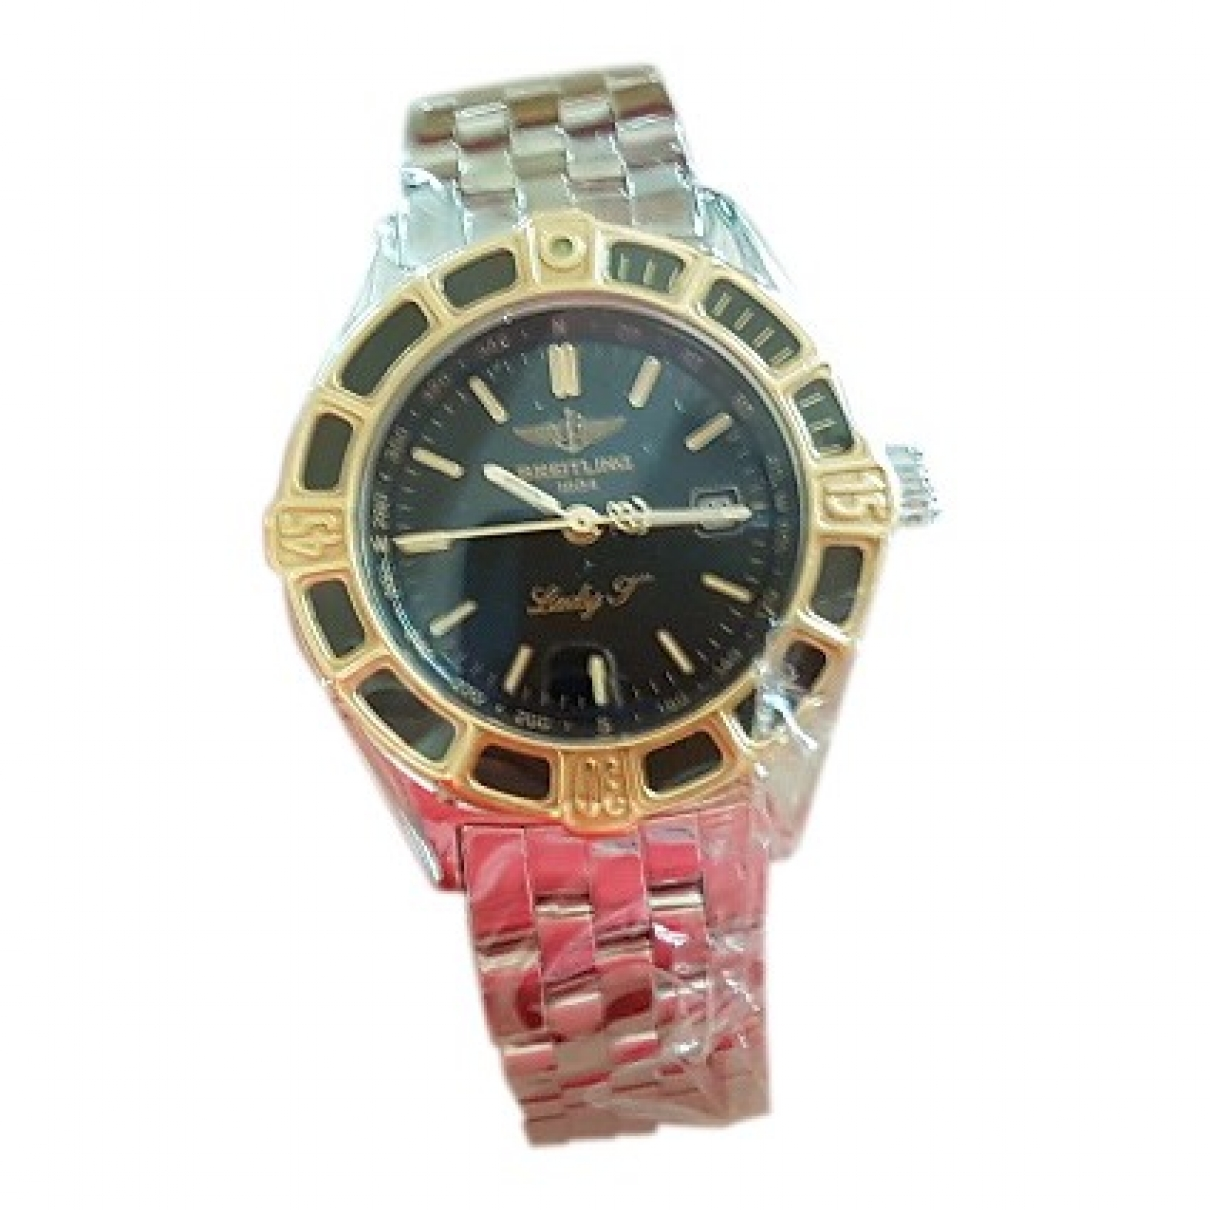 Breitling \N Silver gold and steel watch for Women \N